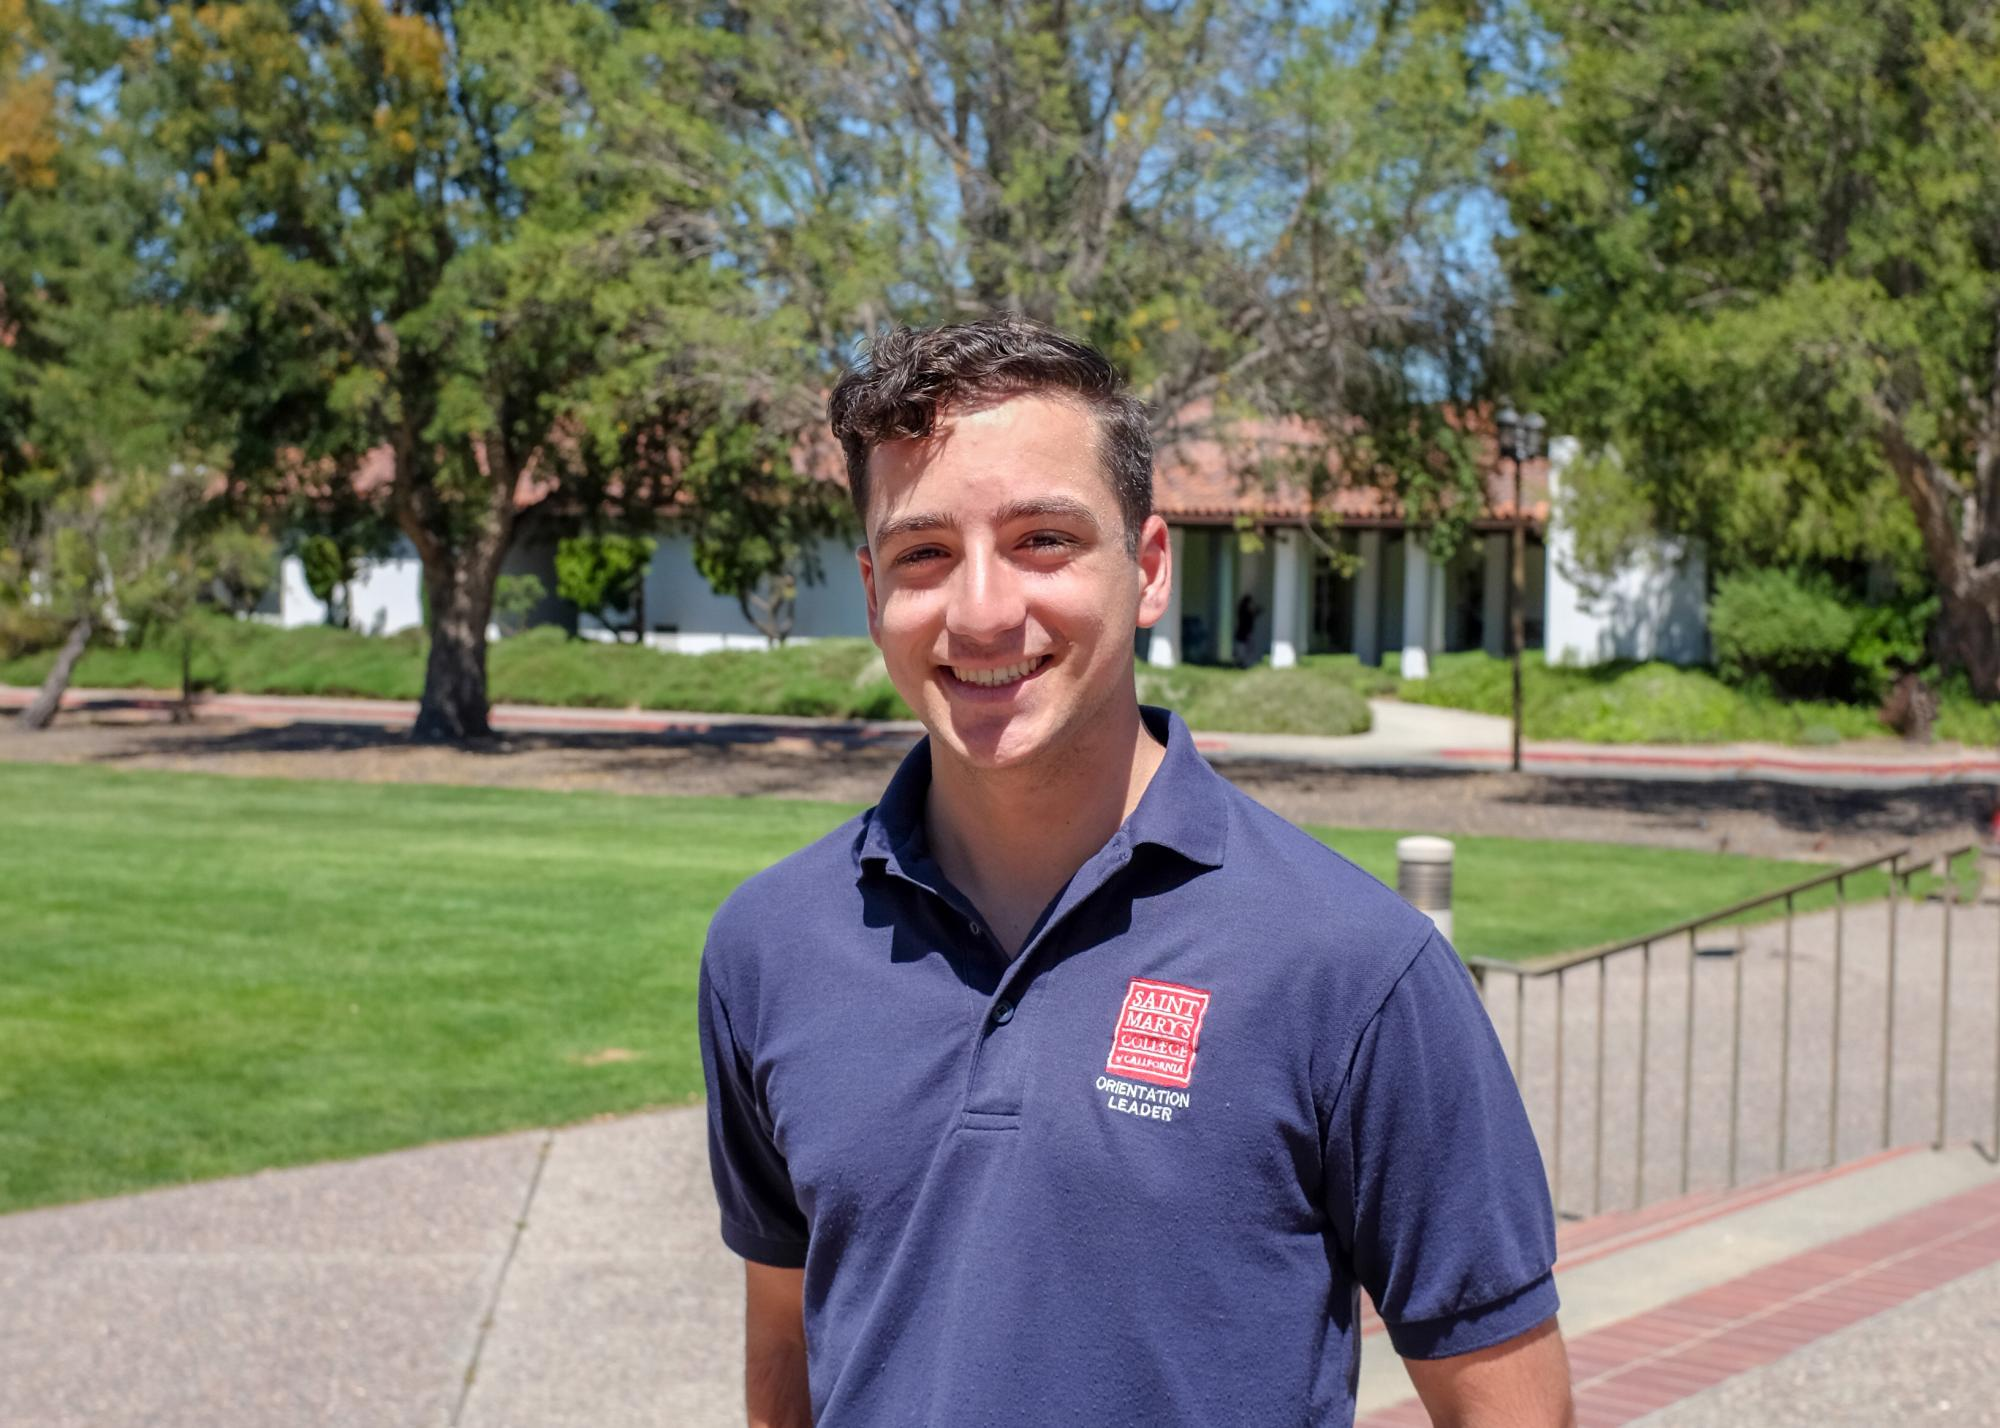 Hey, I'm Geoffrey Khoury. I am a biochemistry major and the fourth in my family to attend this amazing campus. I'm full of energy and I can't wait to energize the incoming first years.